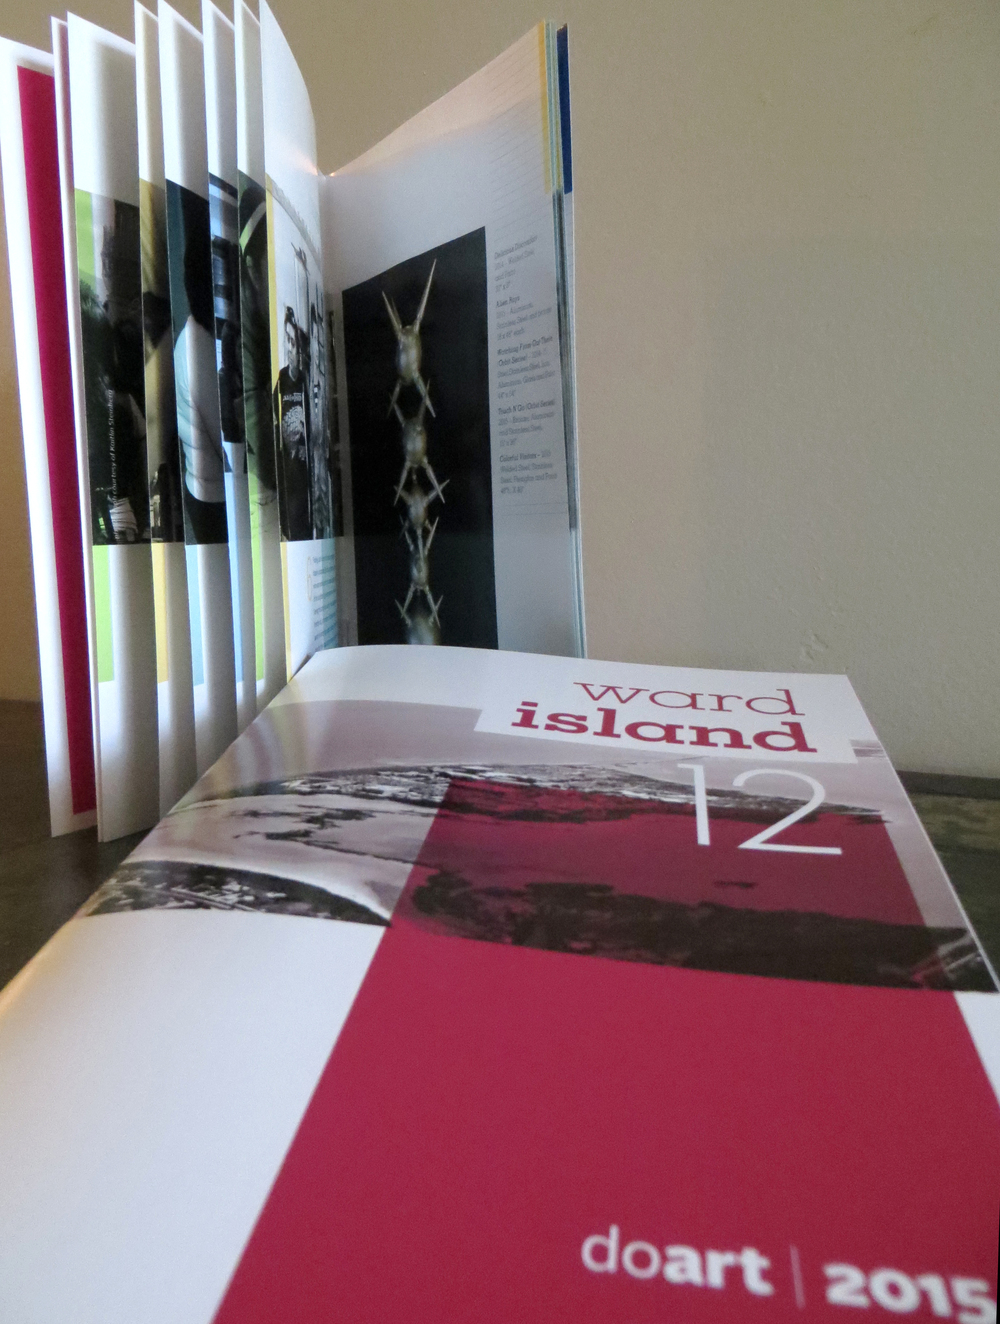 2015 TAMUCC Department of Art Biennial Faculty Art Exhibit Brochure